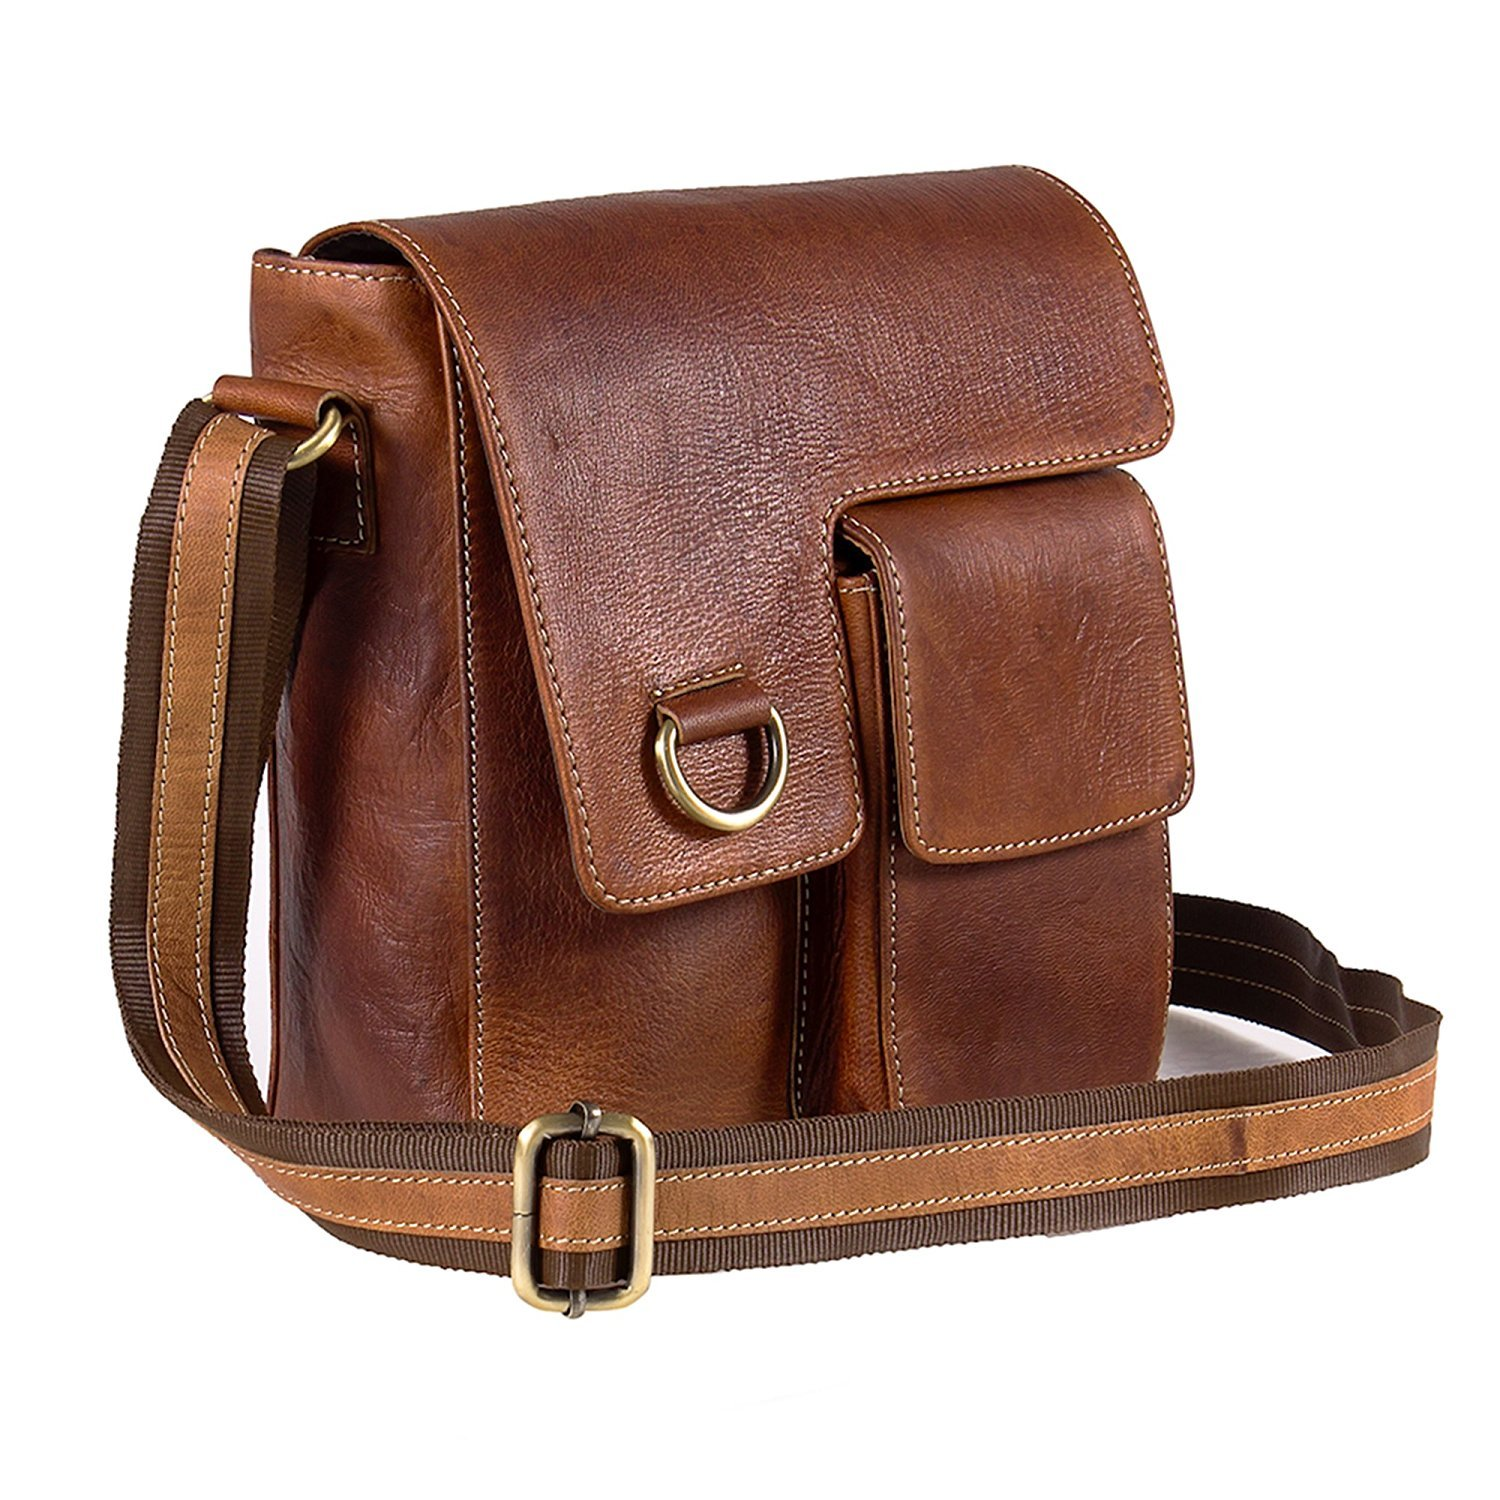 TUZECH Pure Leather Modern Styled Faded Handy Messenger Bag Fits Laptop Upto 13.3 Inches